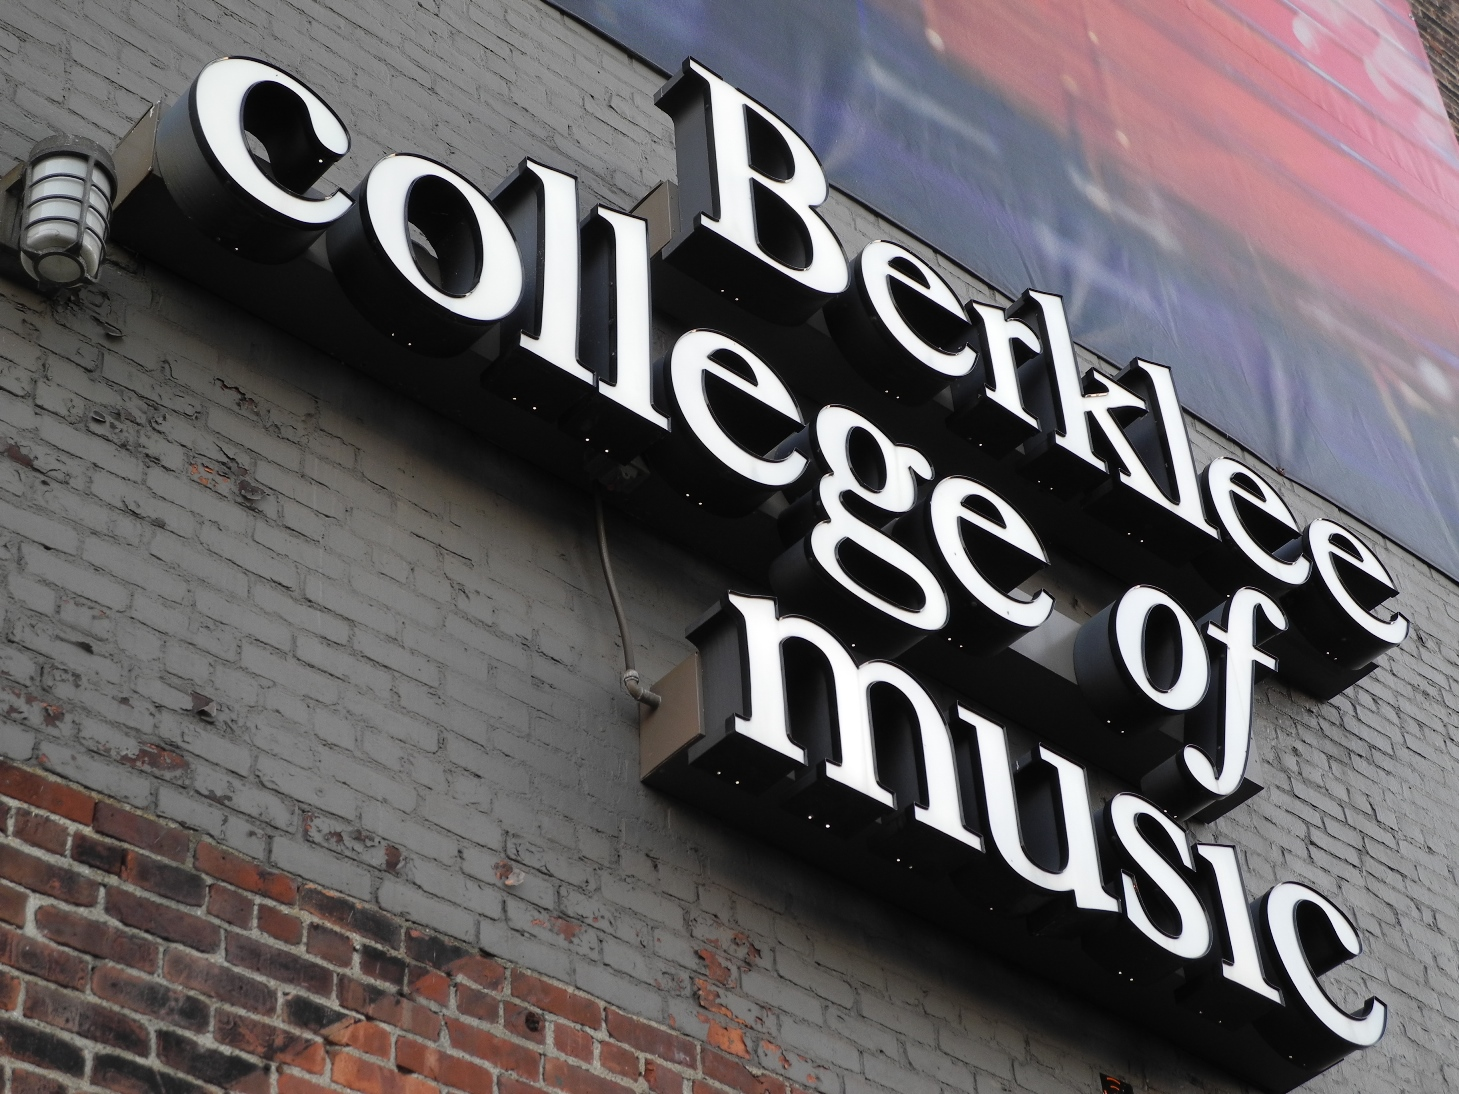 Berklee College of Music v americkém Bostonu